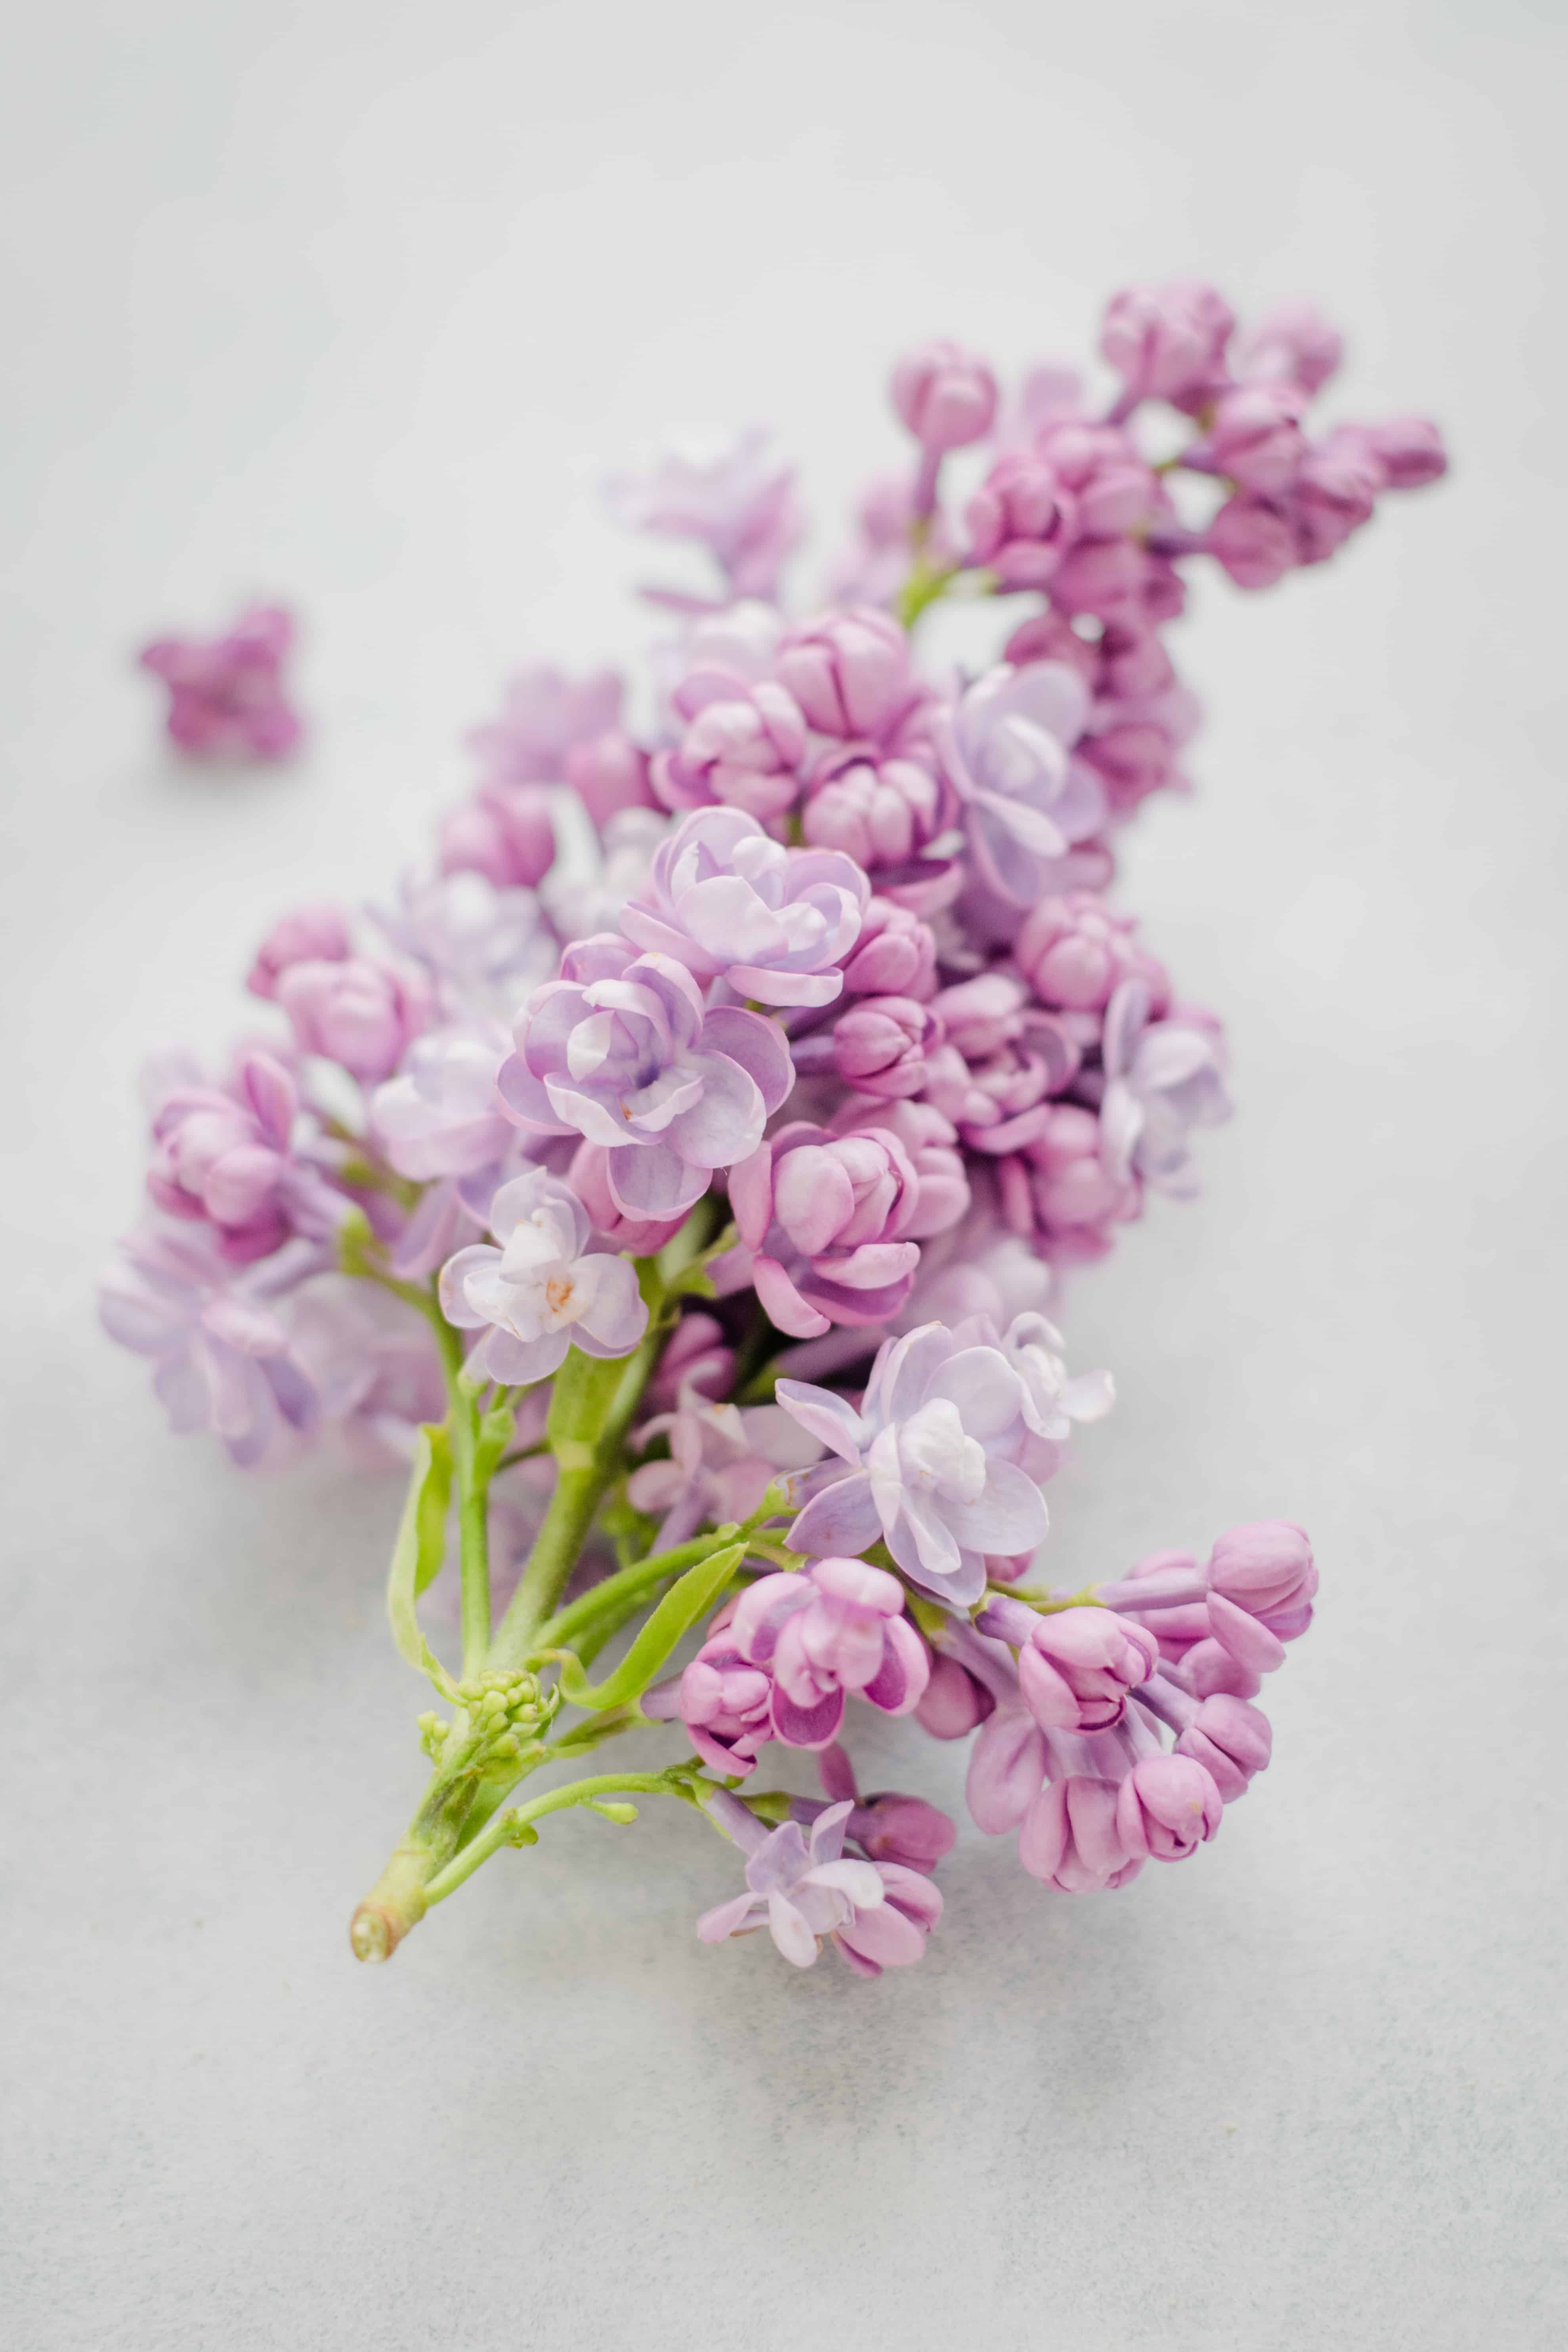 5 Unexpected Ways to Bring Lilac Season into Your Home